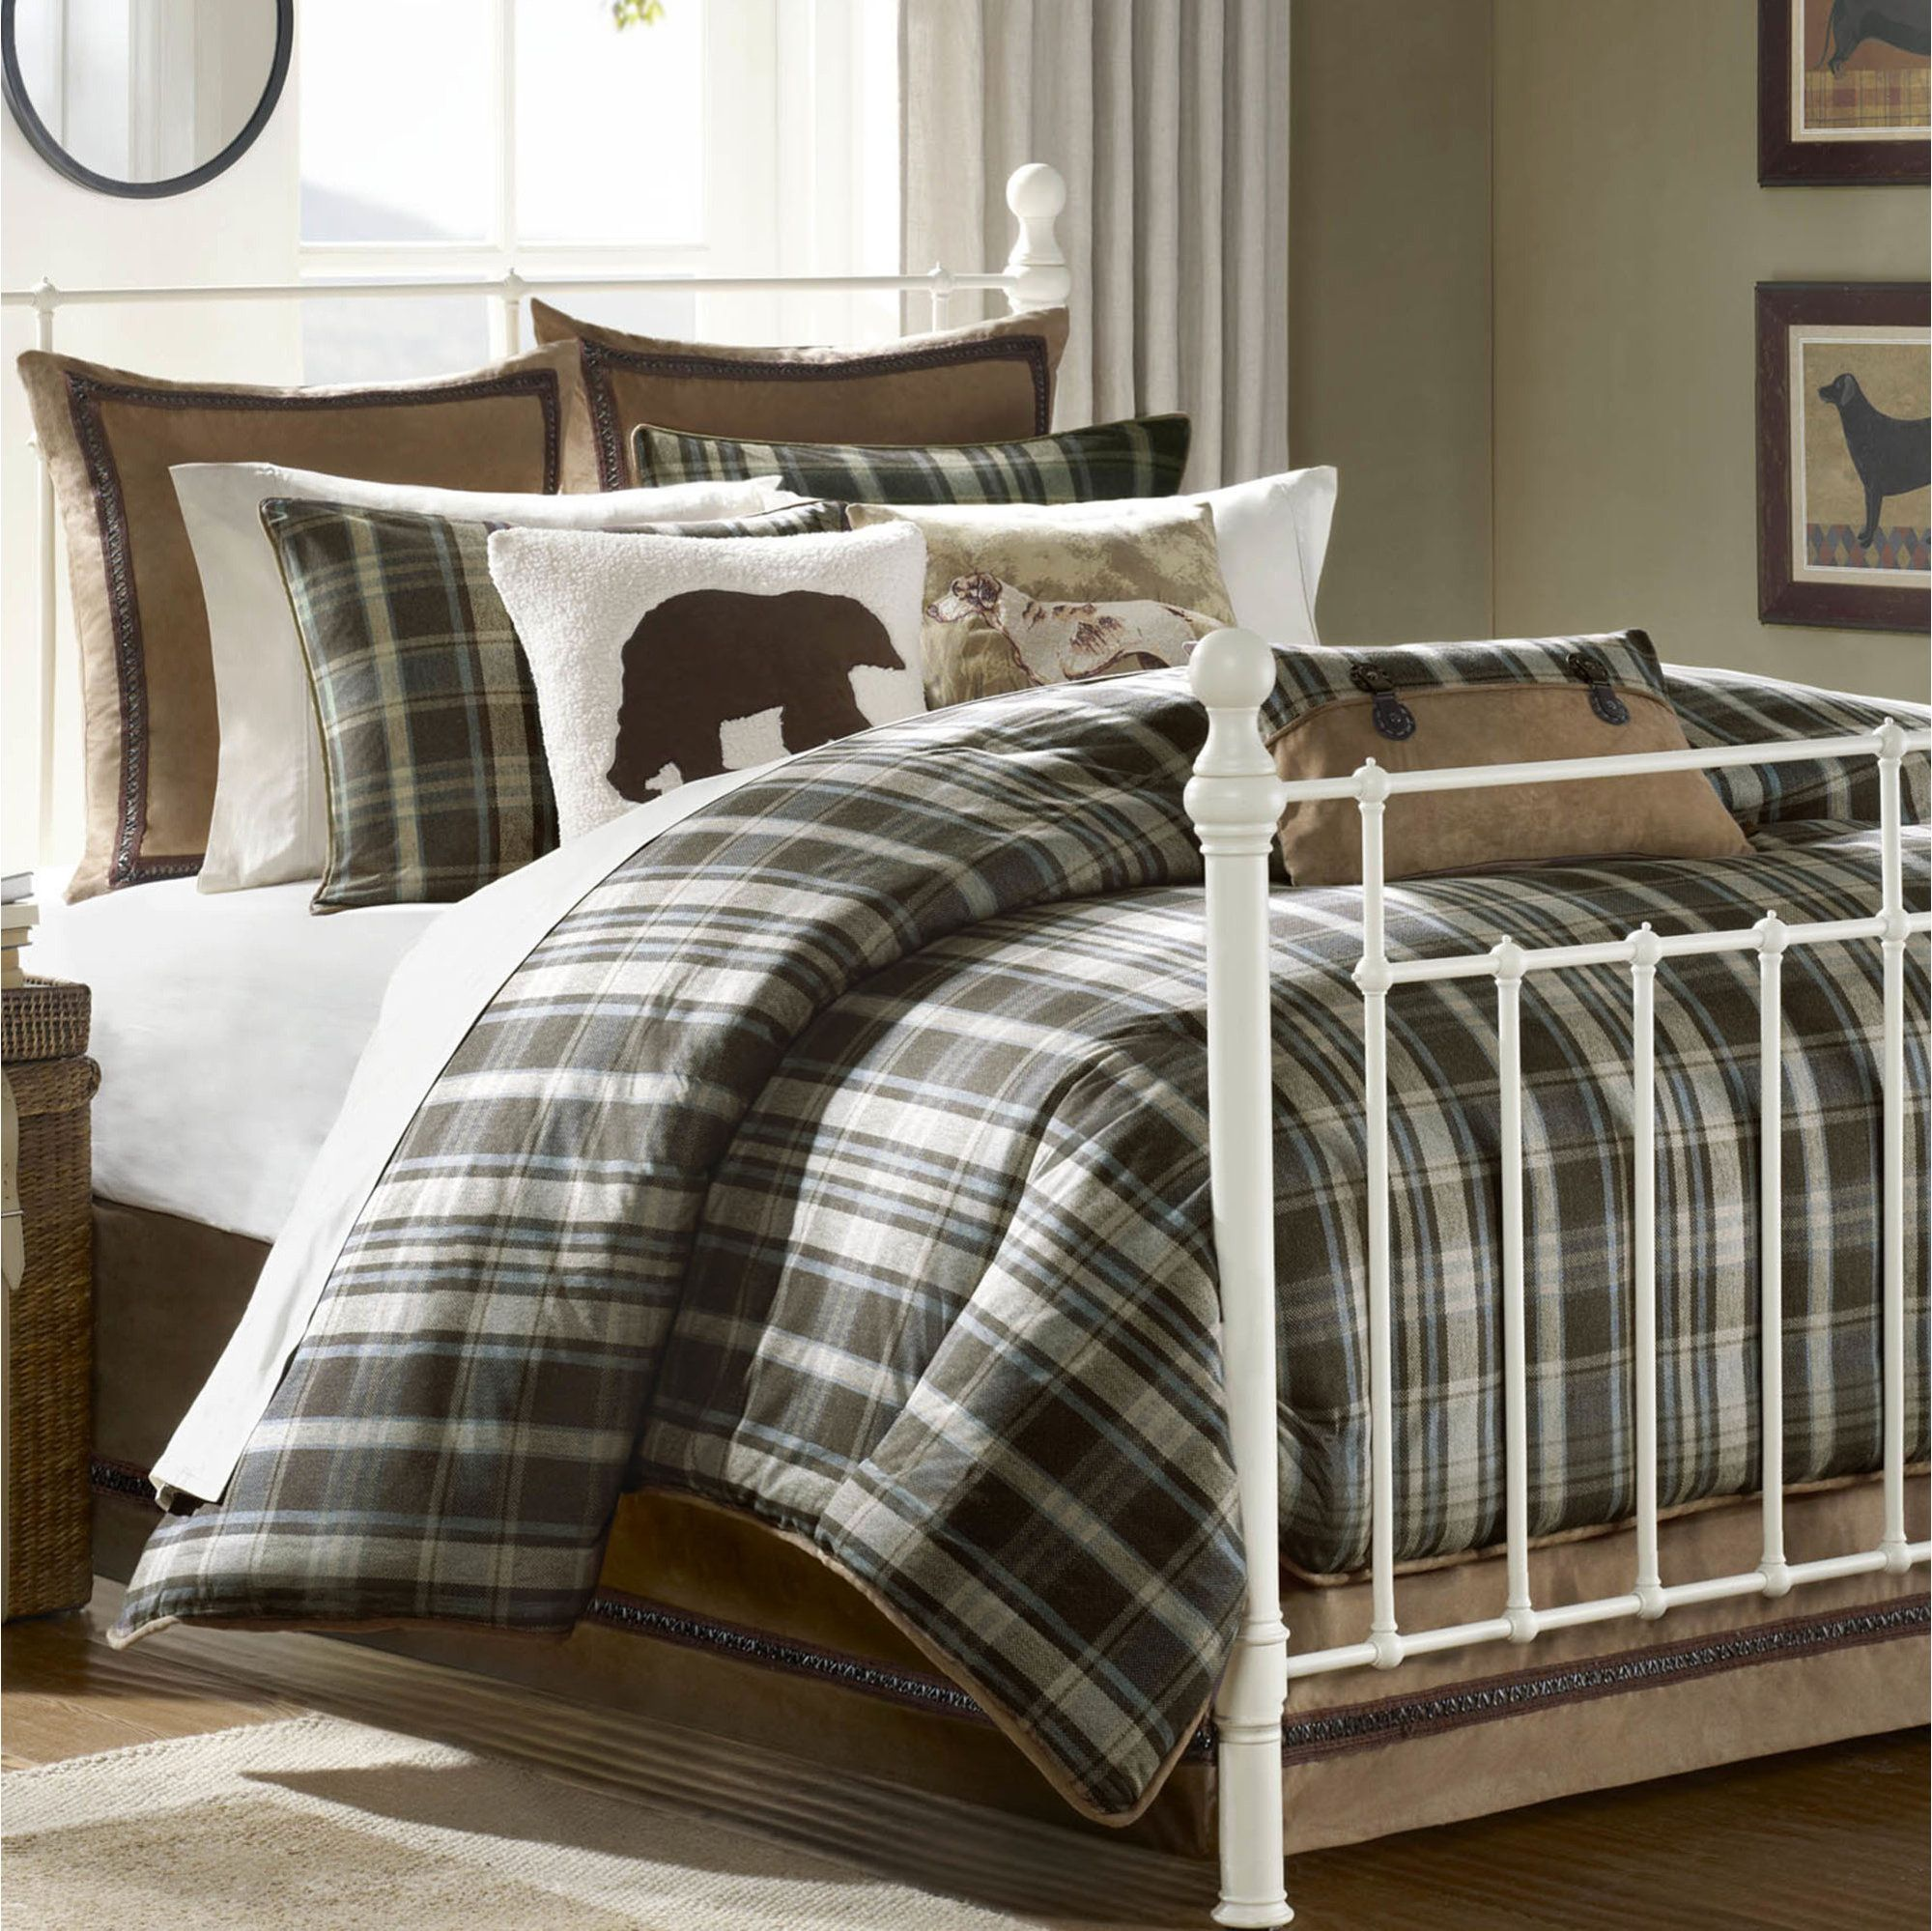 hadley rustic plaid comforter bedding woolrich twin sale find this ... : plaid comforters and quilts - Adamdwight.com